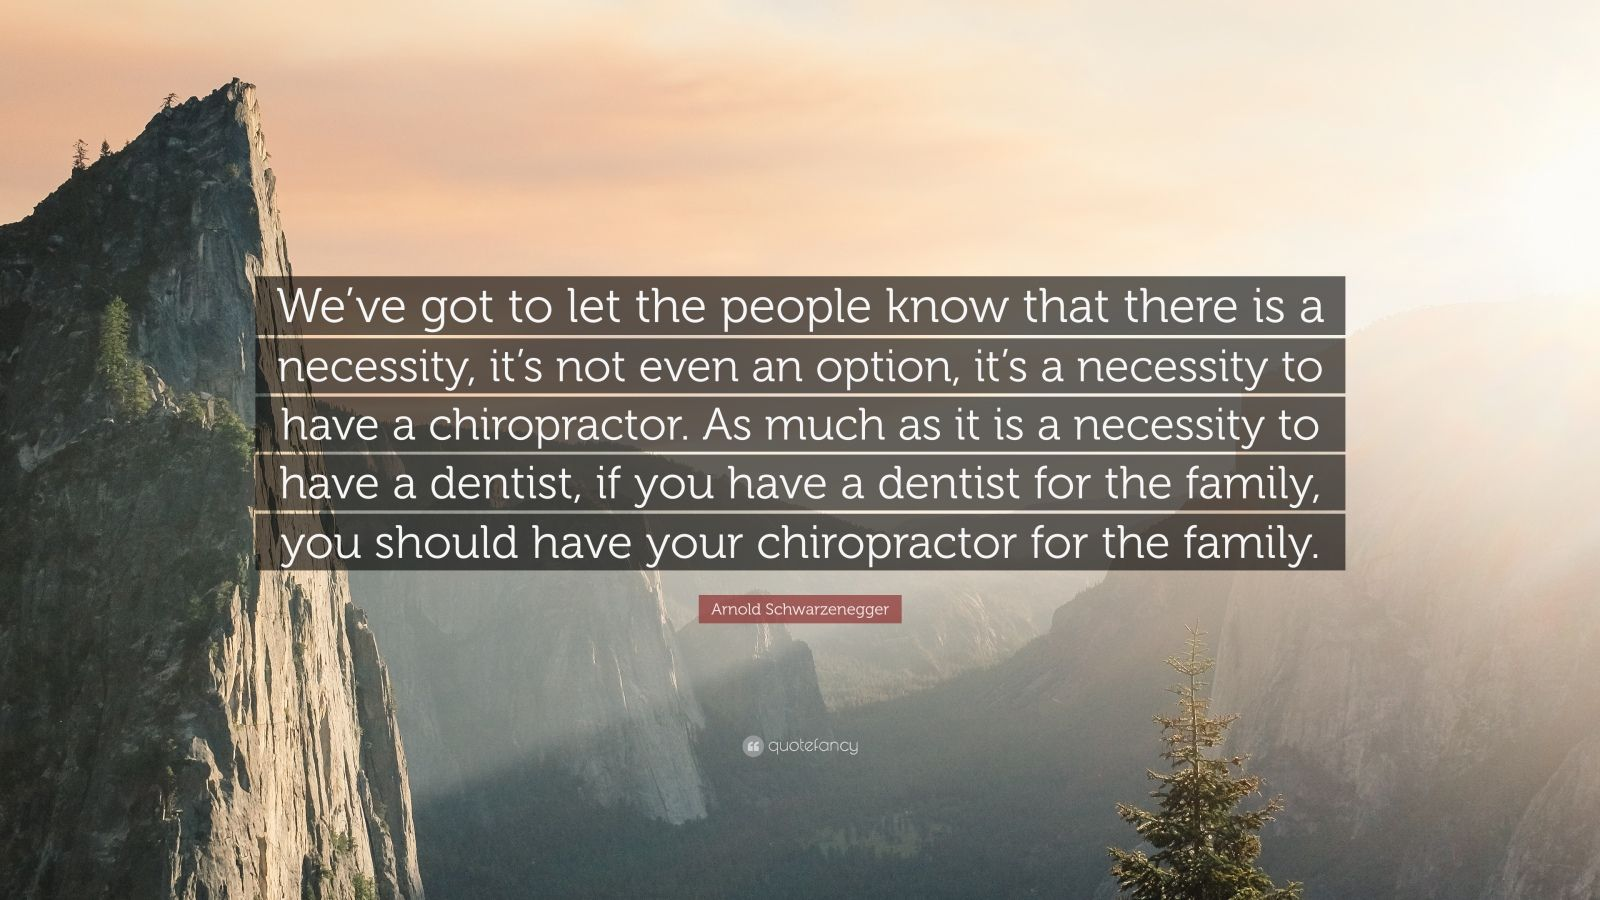 """Arnold Schwarzenegger Quote: """"We've got to let the people know that there is a necessity, it's not even an option, it's a necessity to have a chiropractor. As much as it is a necessity to have a dentist, if you have a dentist for the family, you should have your chiropractor for the family."""""""